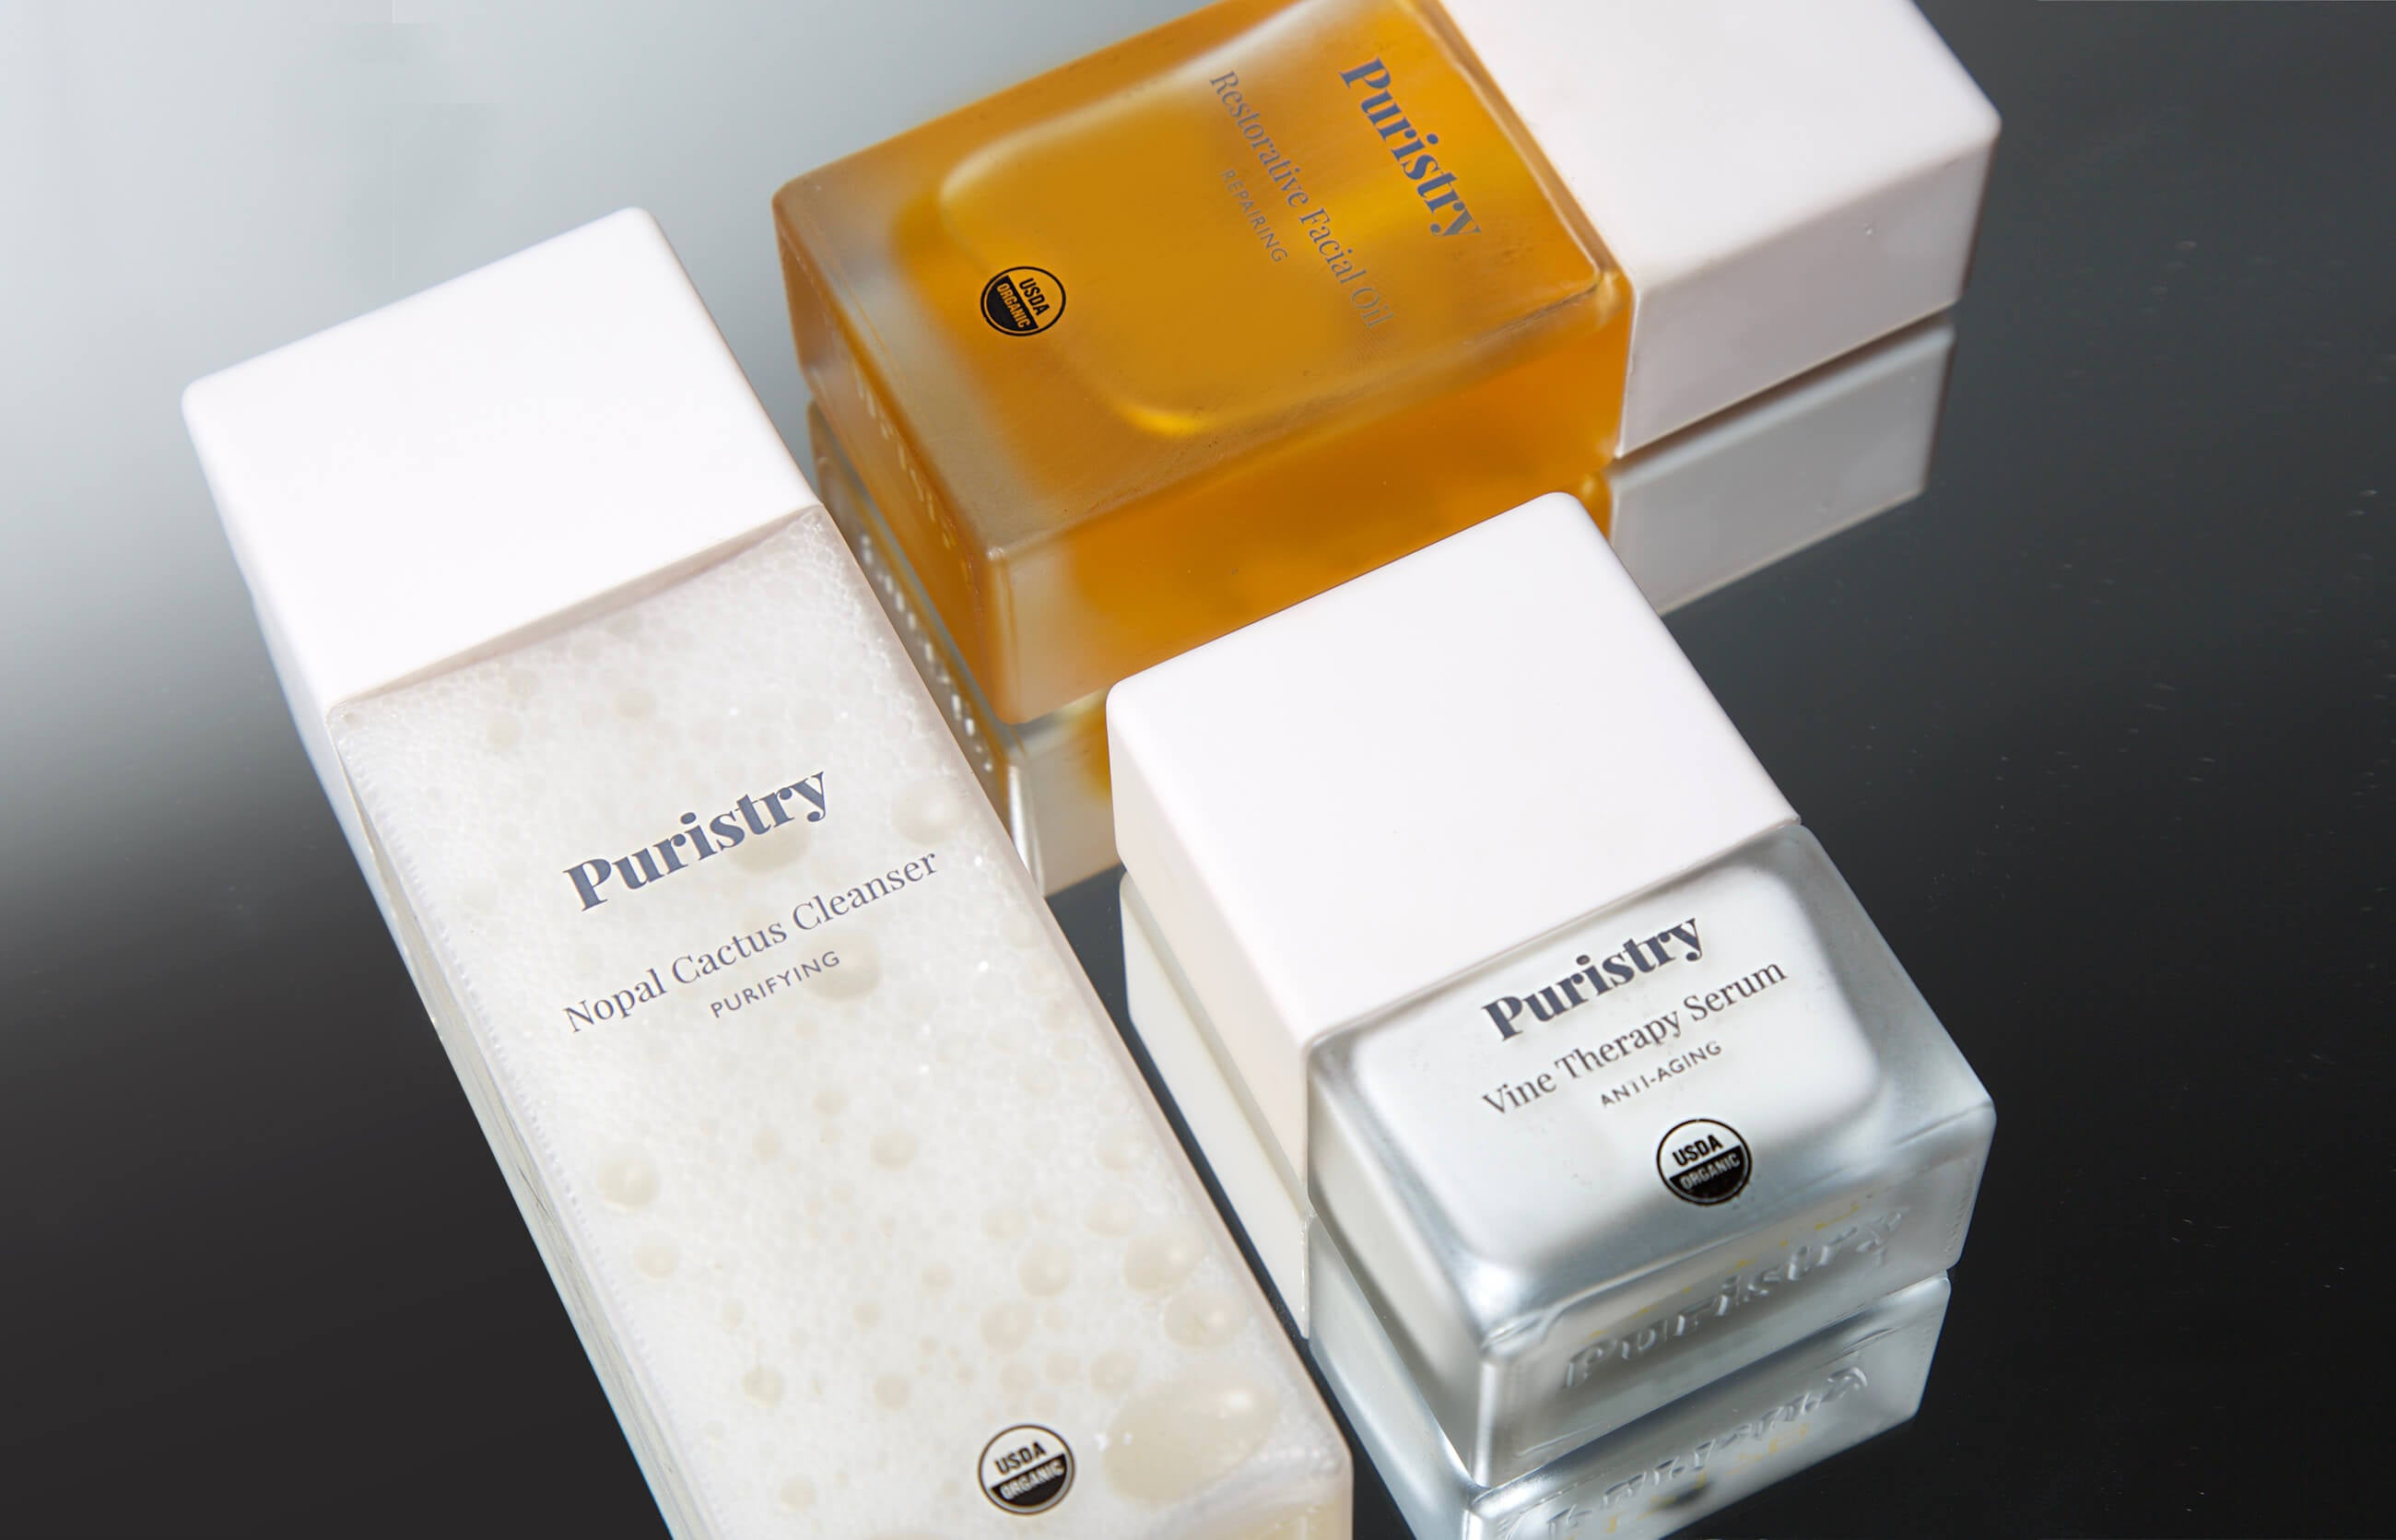 Puristiry Product